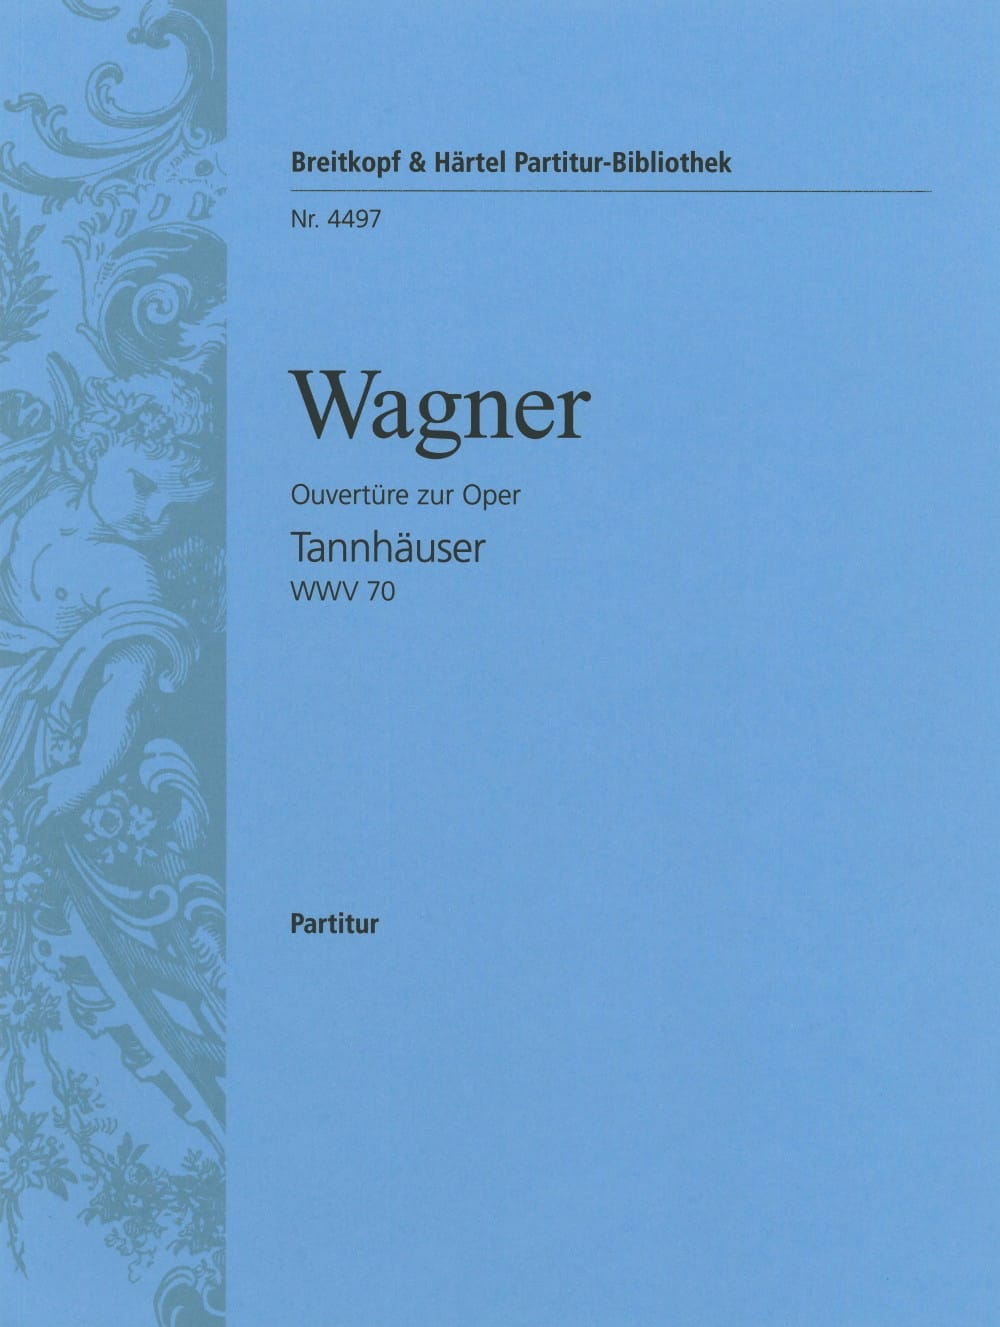 Richard Wagner - Tannhäuser, Opening - Driver - Partition - di-arezzo.com